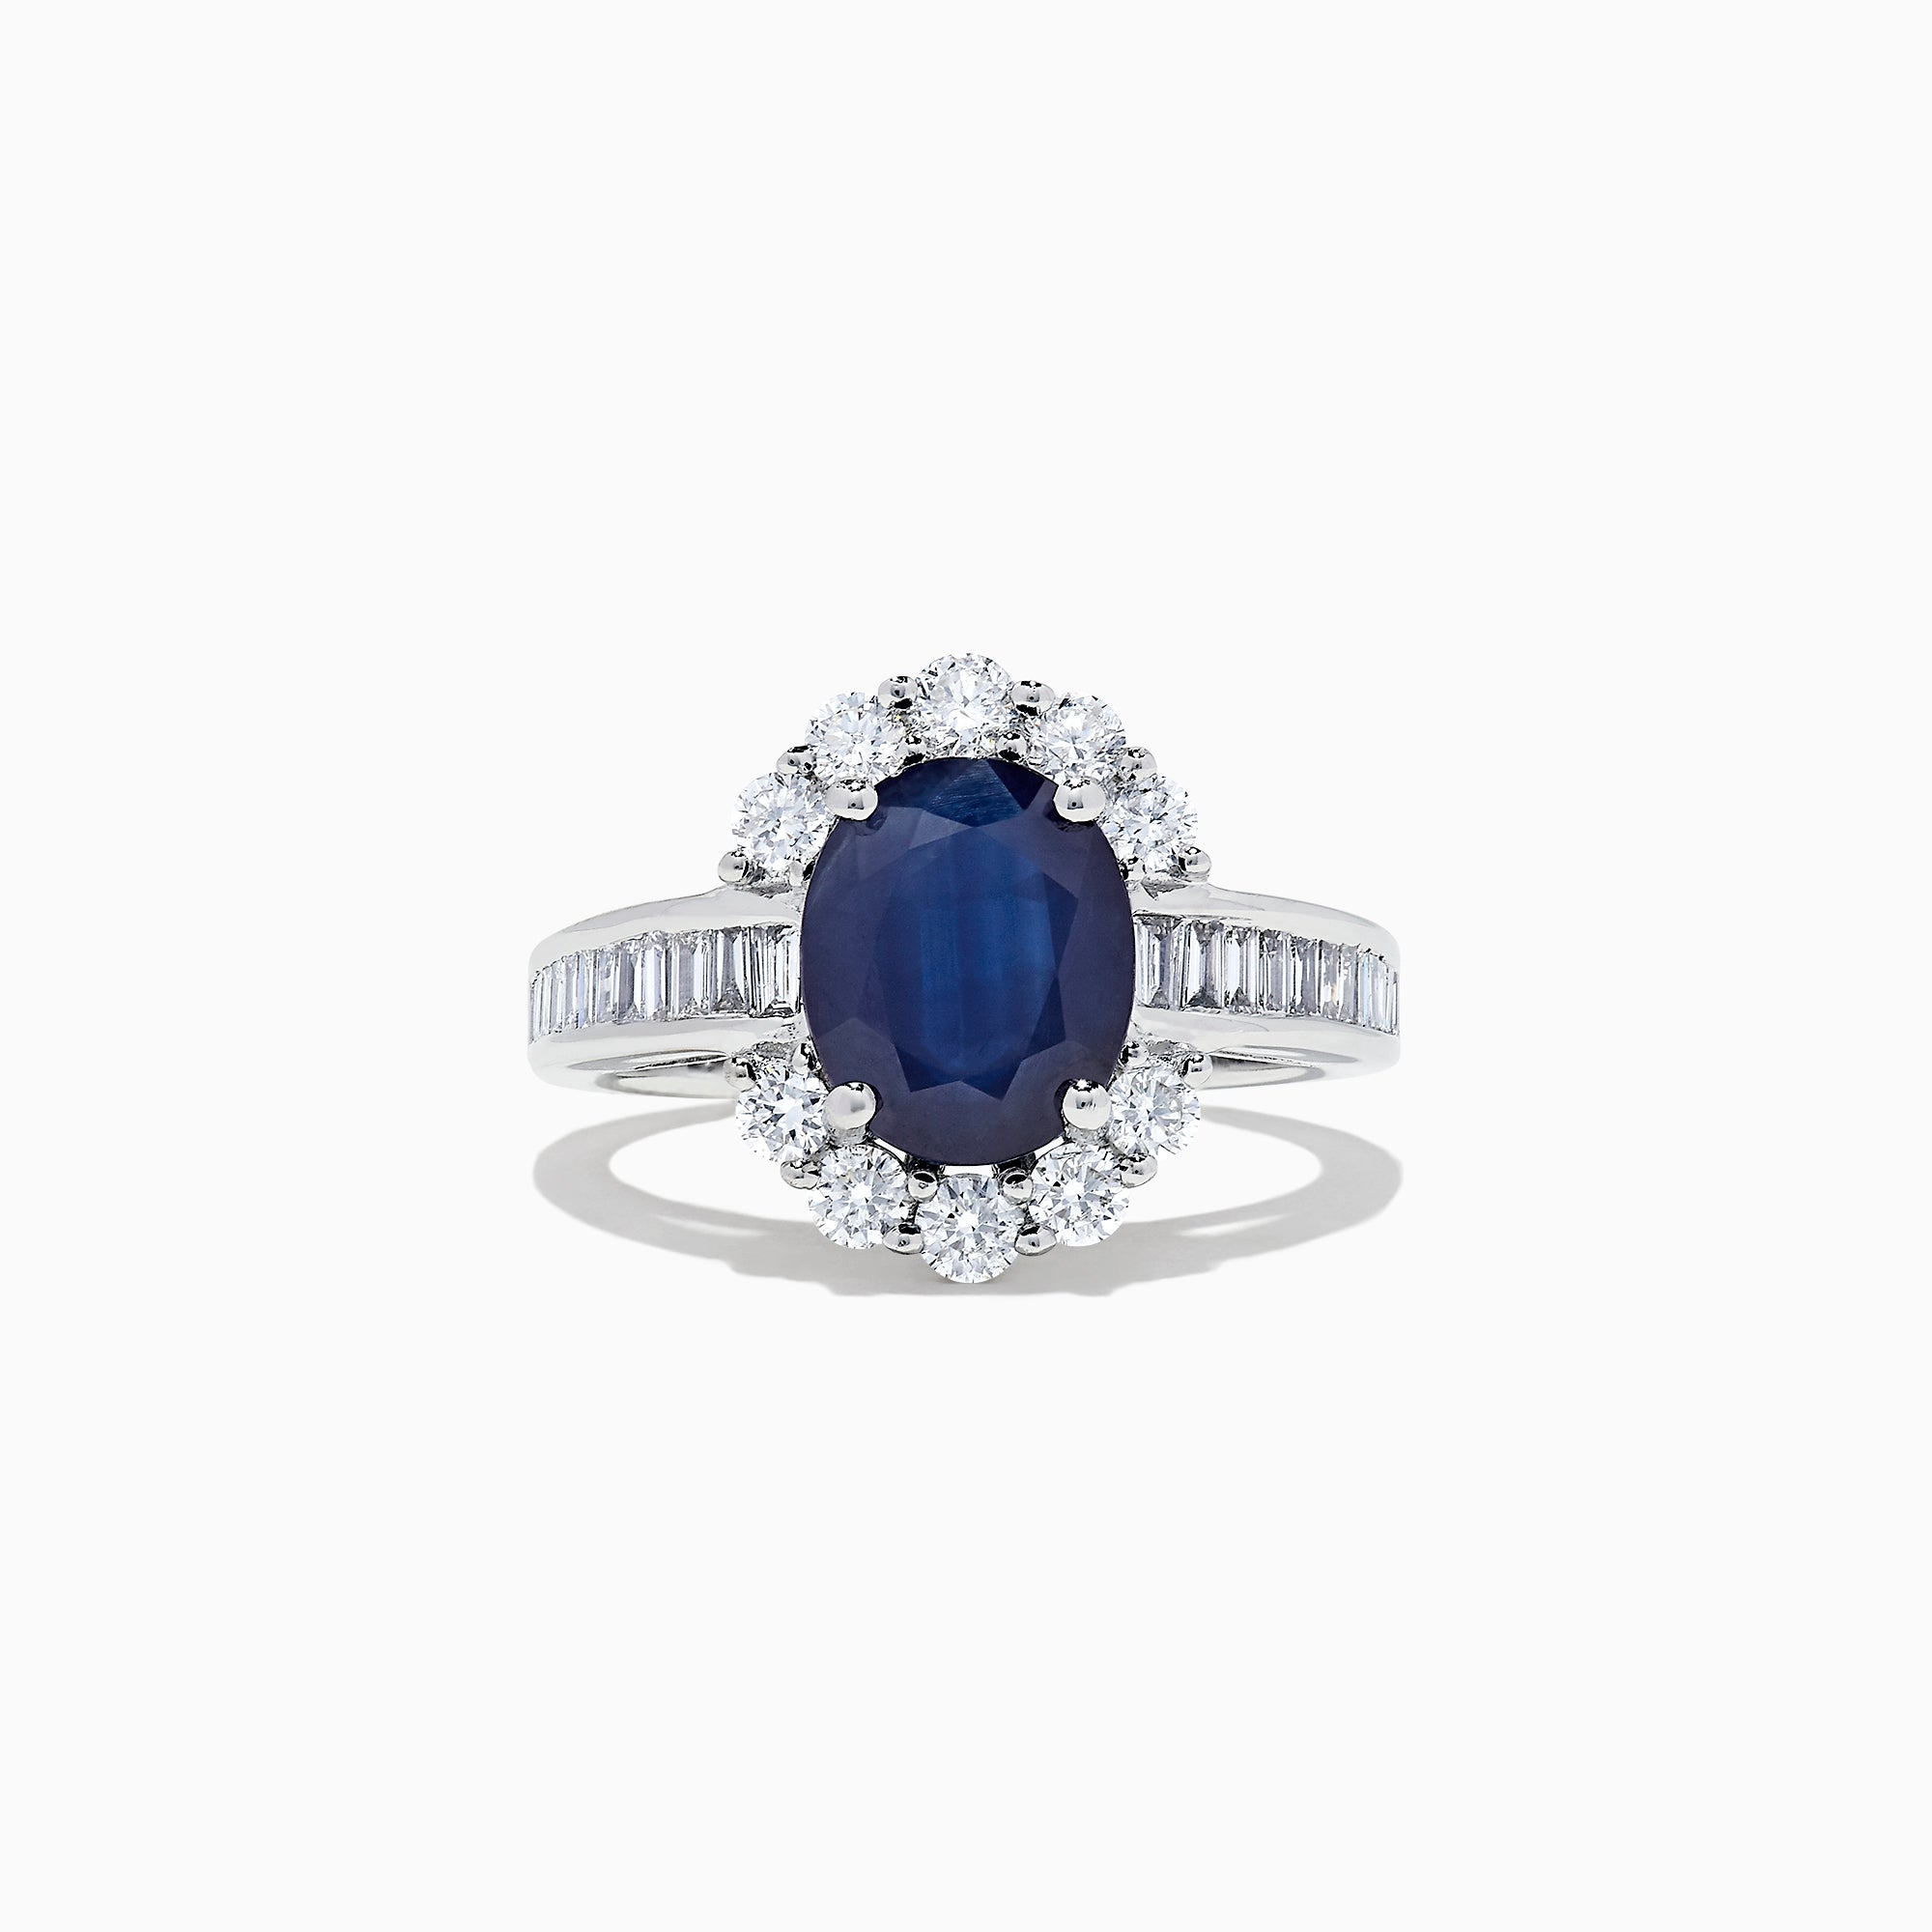 Effy Royale Bleu 14K White Gold Sapphire and Diamond Ring, 4.03 TCW TCW